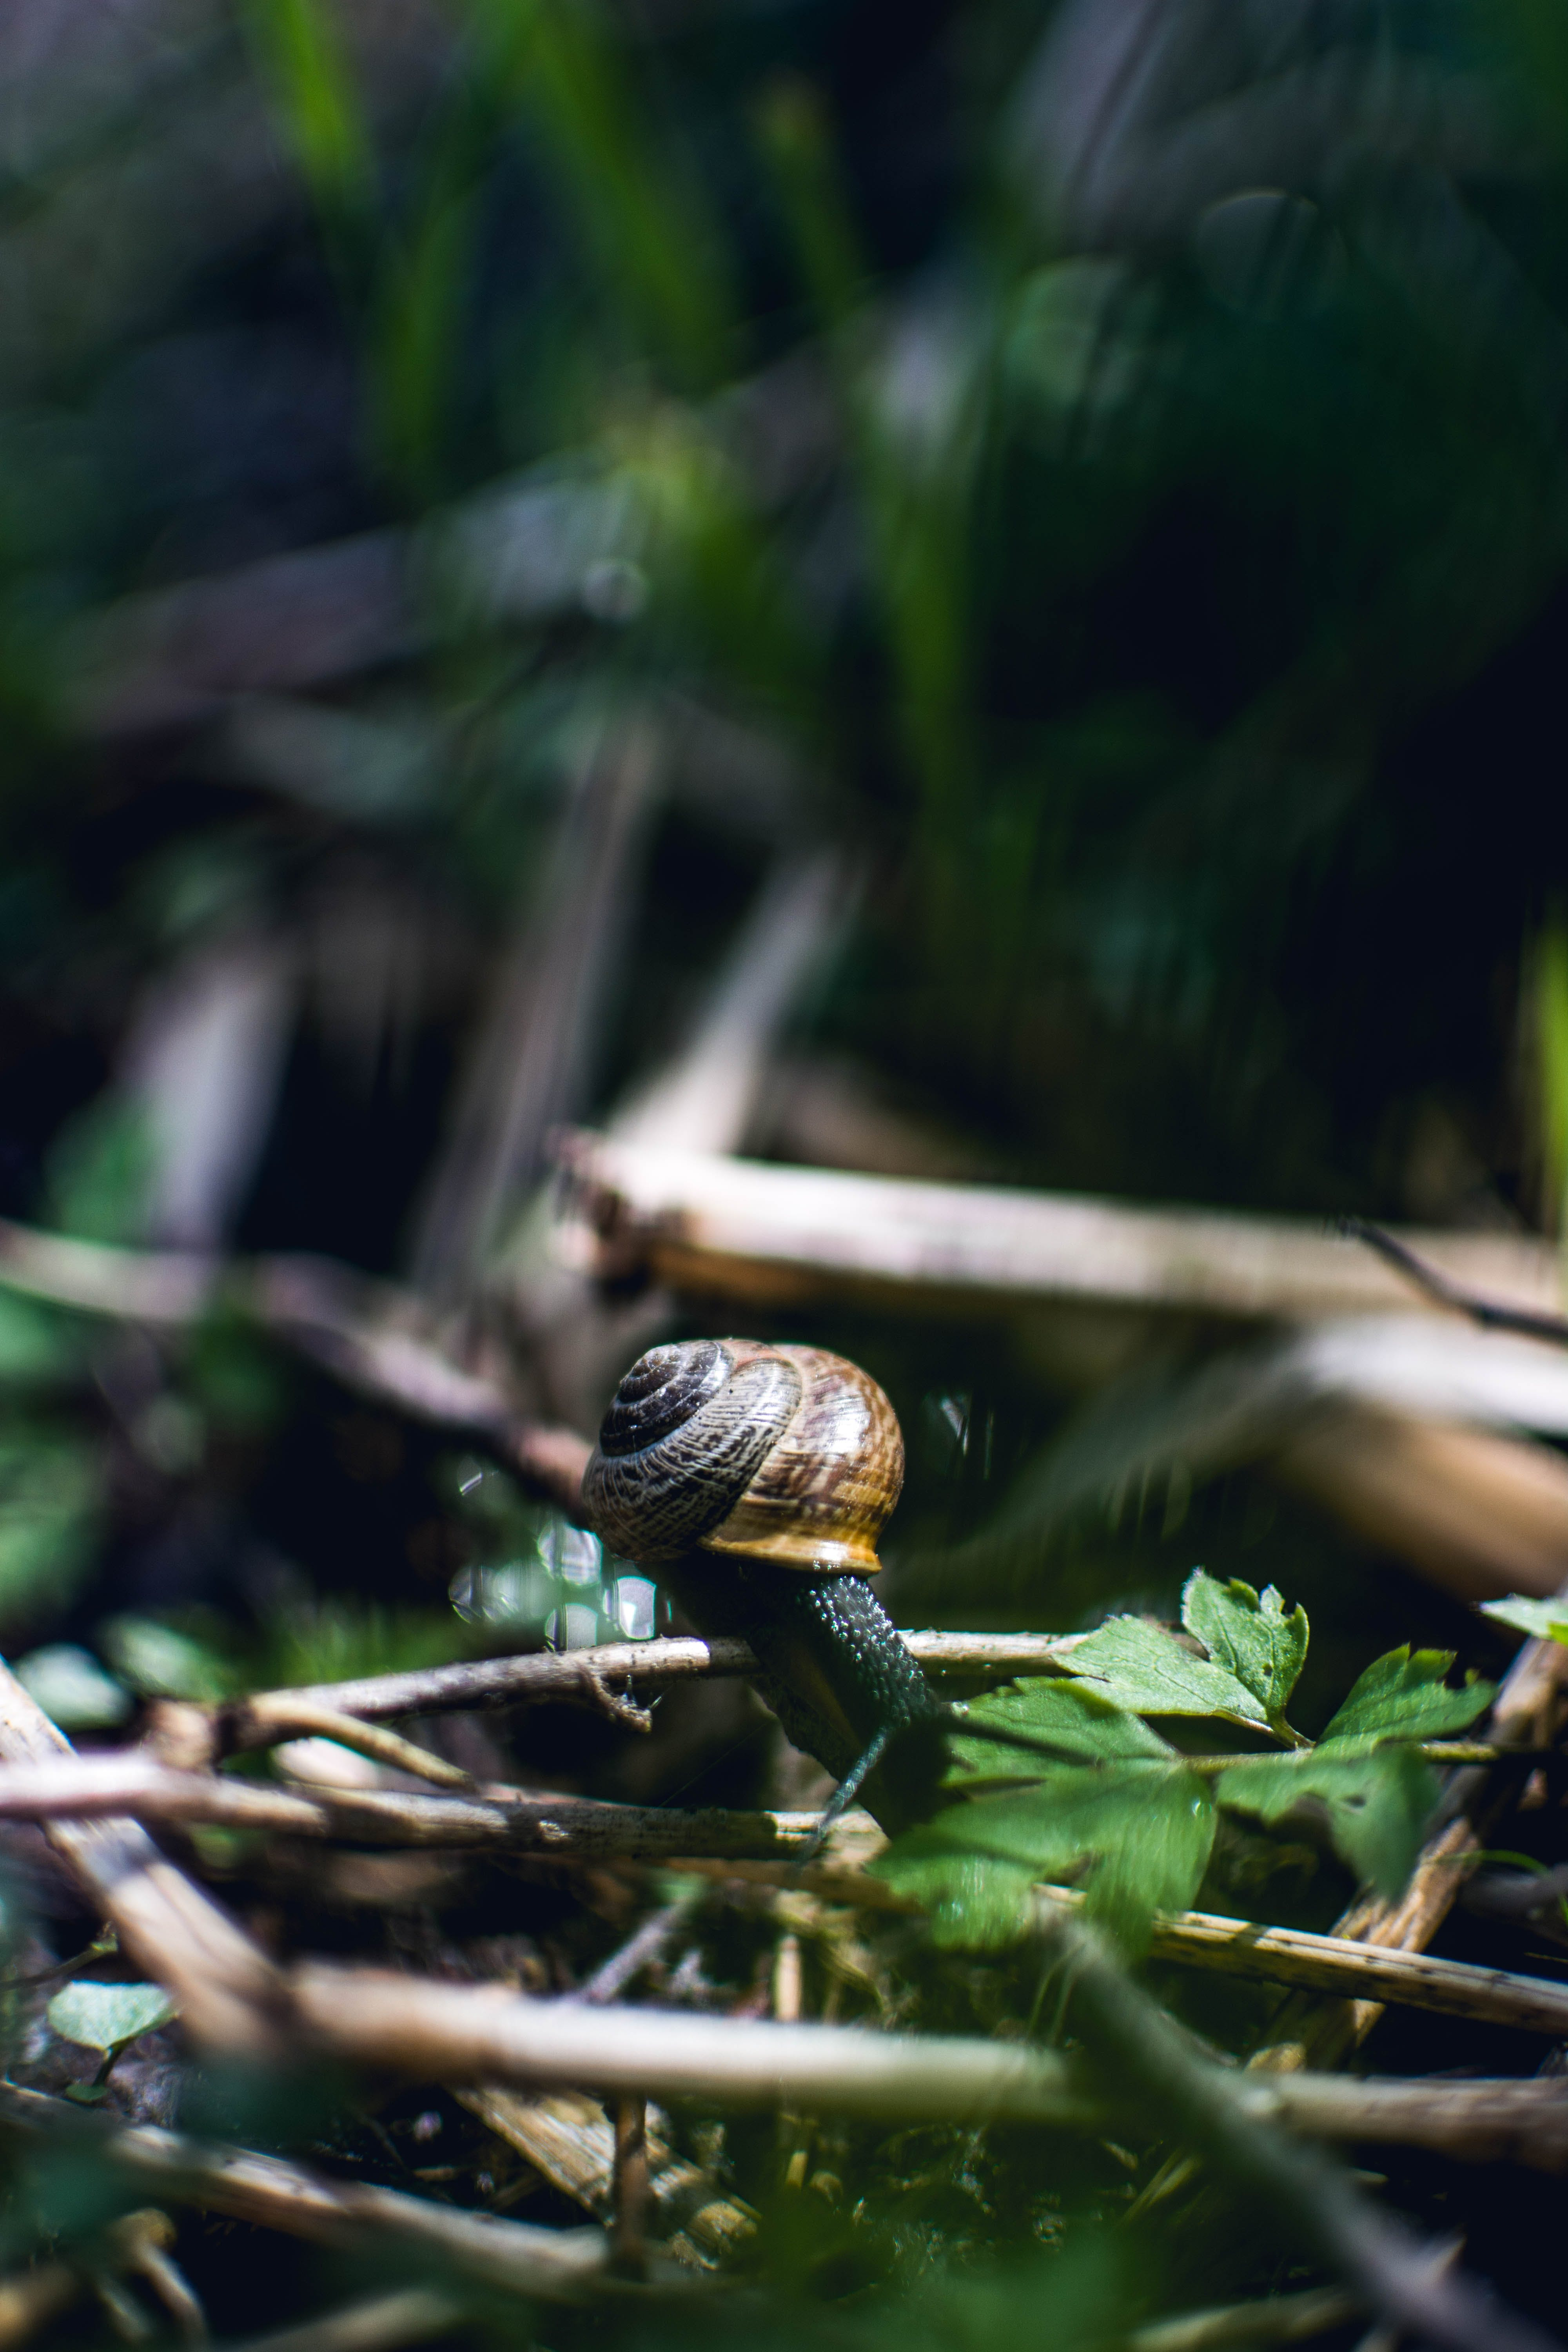 Brown Snail on Twig